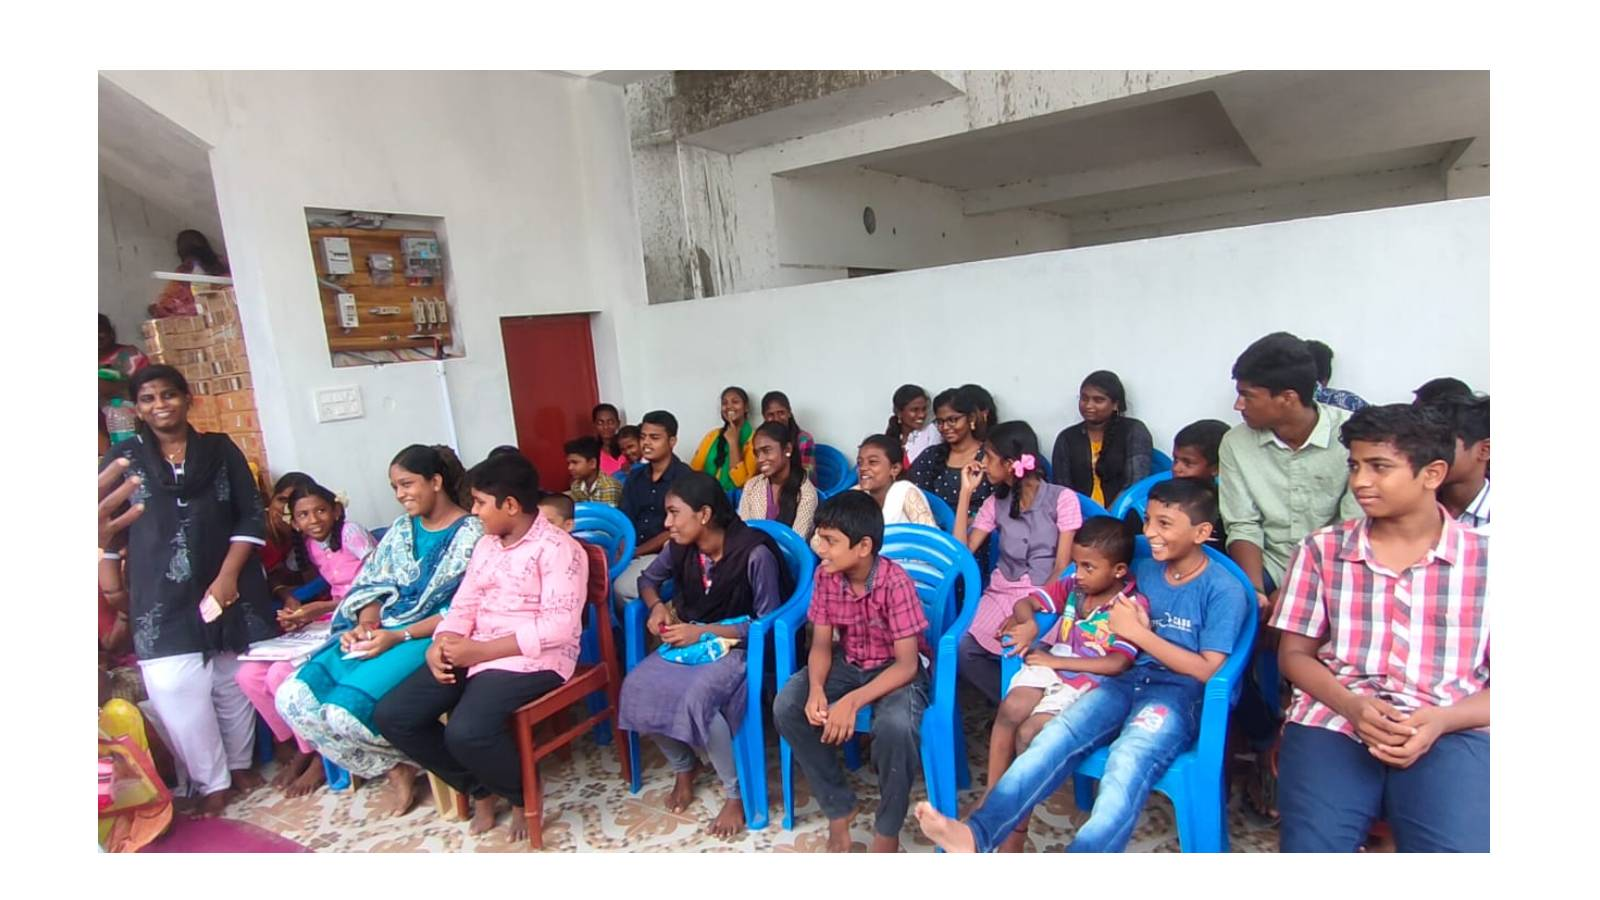 EDUCATIONAL SUPPORT TO LOW INCOME FAMILIES